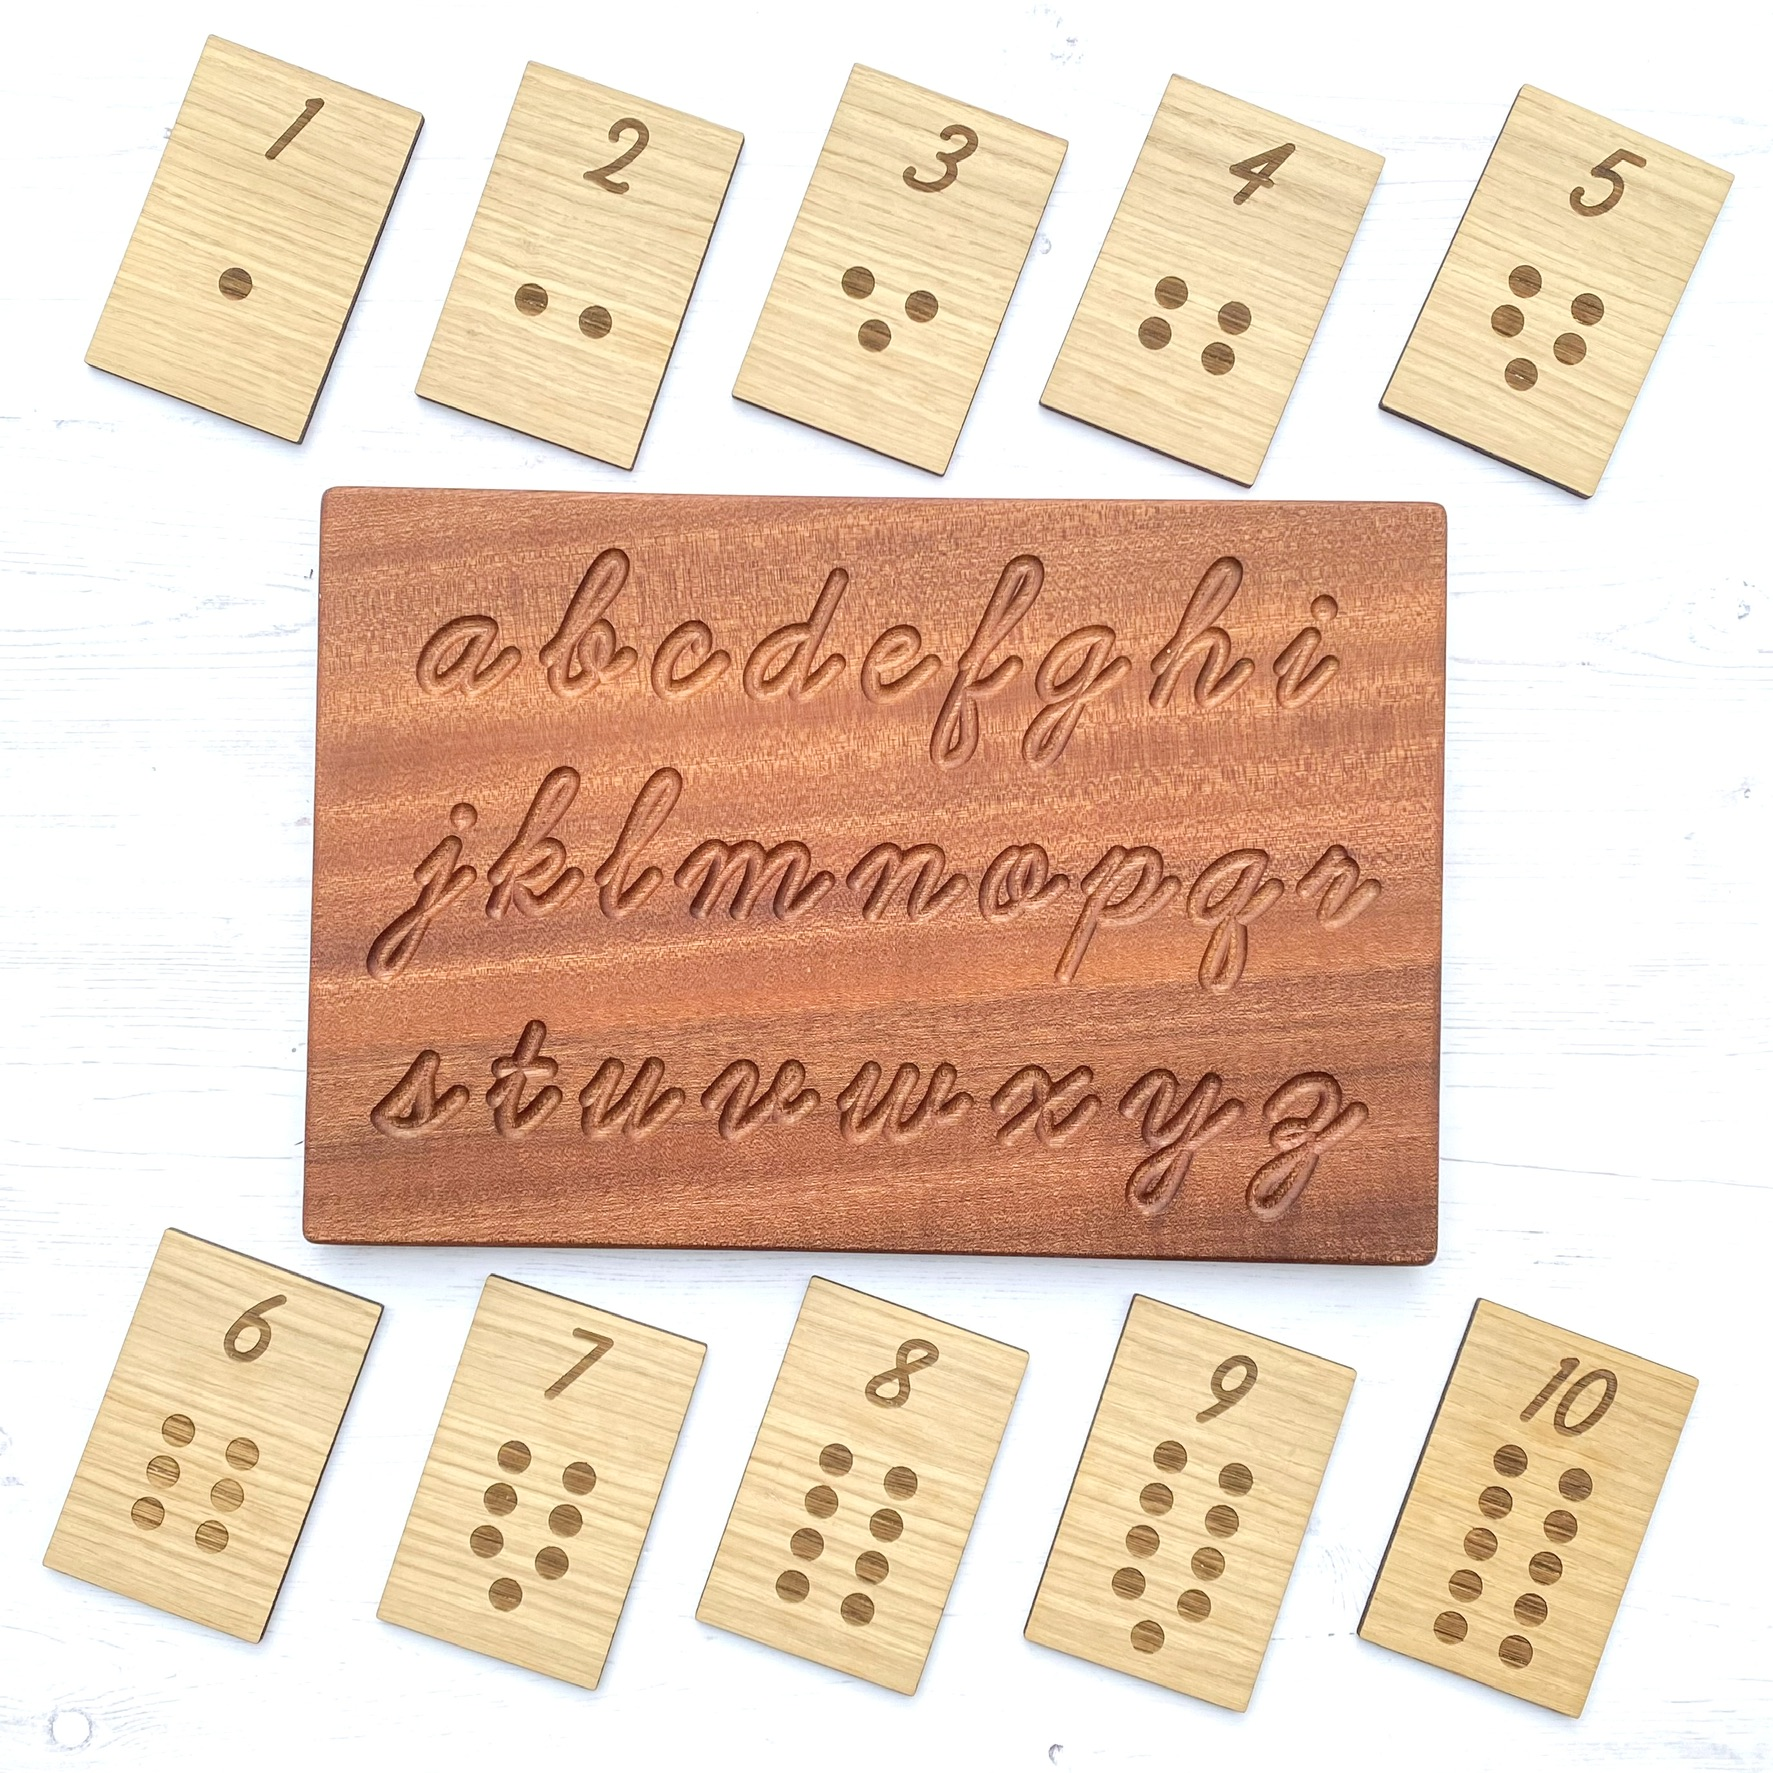 Montessori Inspired Academic Gift Set (Alphabet Tracing Board and Number Cards)